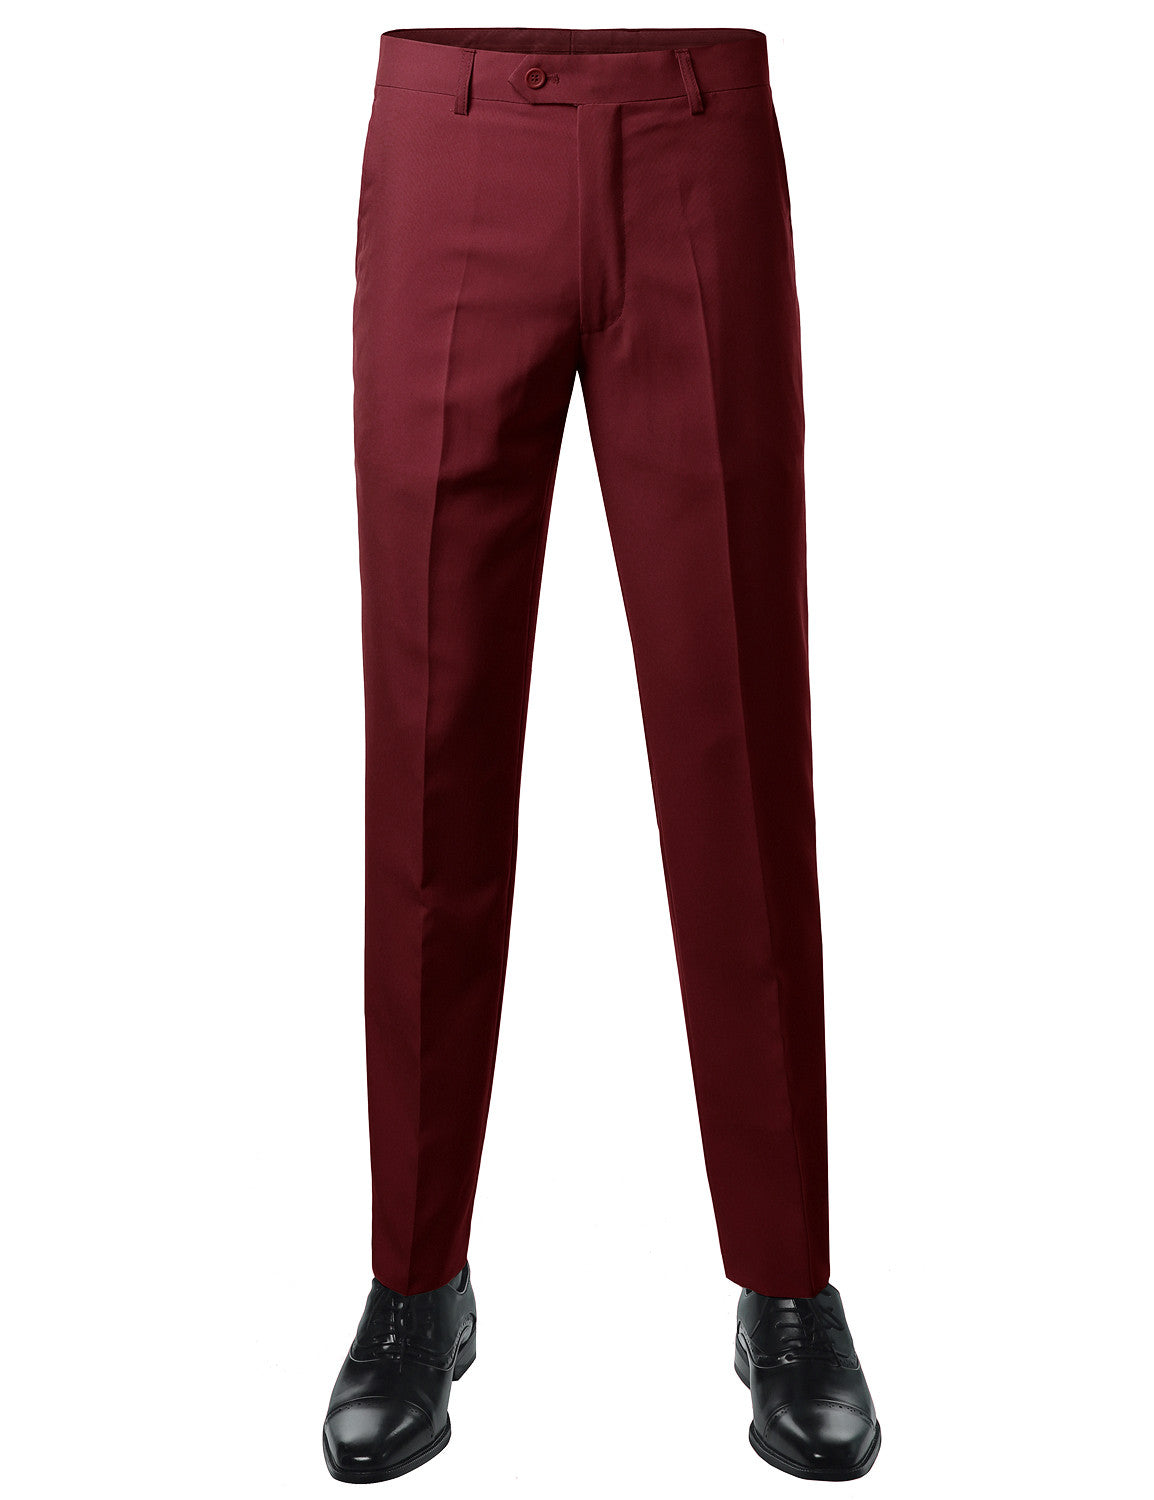 Solid BURGUNDY Modern Fit 2 Piece Suit- MONDAYSUIT